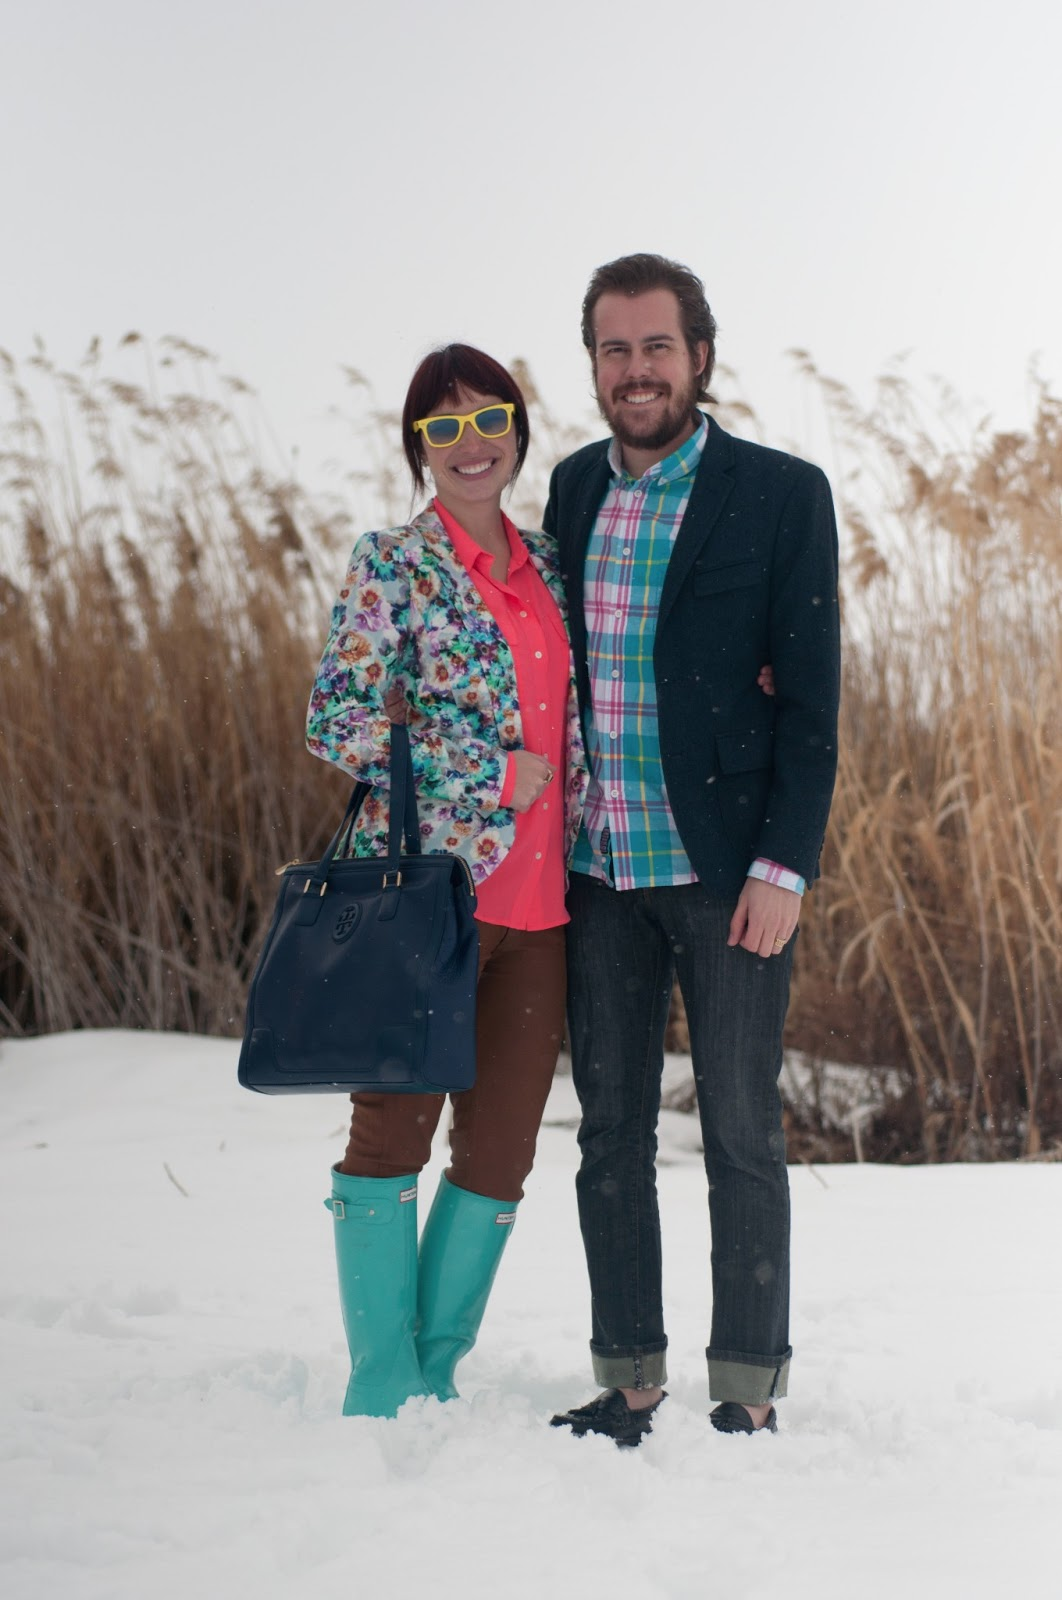 fashion blog, fashion blogger, mens fashion, mens style blog, ootd, floral, floral blazer, blue, pink, teal, hot pink, floral print, floral clothing, nordstrom, jcrew, jcrew blouse, silk blouse, blouse, waxed jeans, waxed pants, citizens of humanity, hunter, hunter boots, rain boots, rain boot, teal hunter boot, blue hunter boots, glossy boots, boot, glossy hunter boot, tory burch, leather purse, navy purse, leather purse, navy leather, ray ban, ray bans, wayfer, wayfer ray ban, earrings, bow earrings, gold earrings, womens style, fashion, style, fashion blogger, womens fashion blogger, mens fashion blogger, personal style, outfit post, style post, banana republic, mens blazer, banana republic blazer, penfield, css, california cheap skate, allen edmonds, classic mens shoes, old man shoe, black dress shoe, plaid,